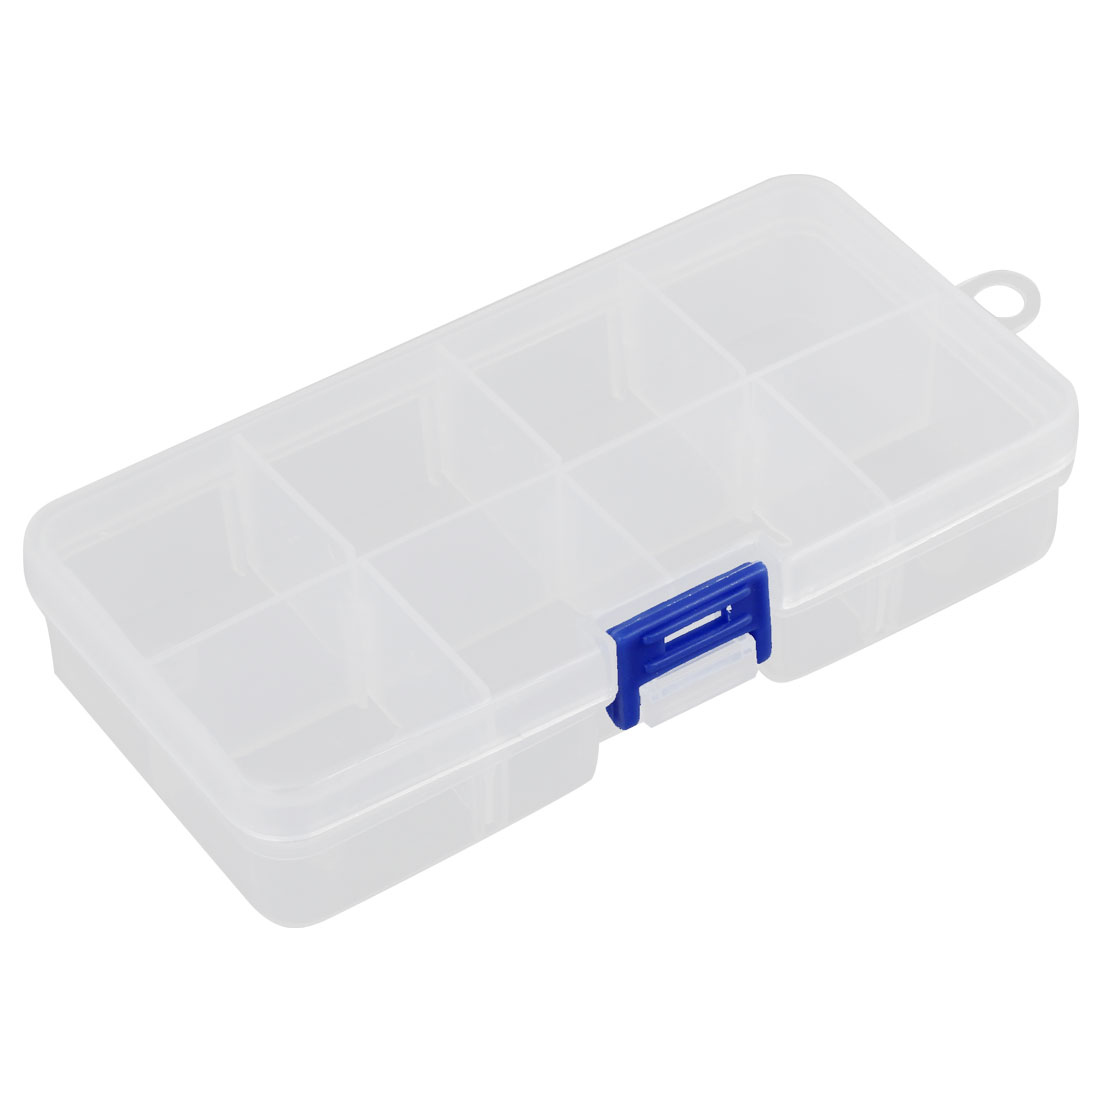 8 Separable Compartments Electronic Components Storage Box Container Transparent